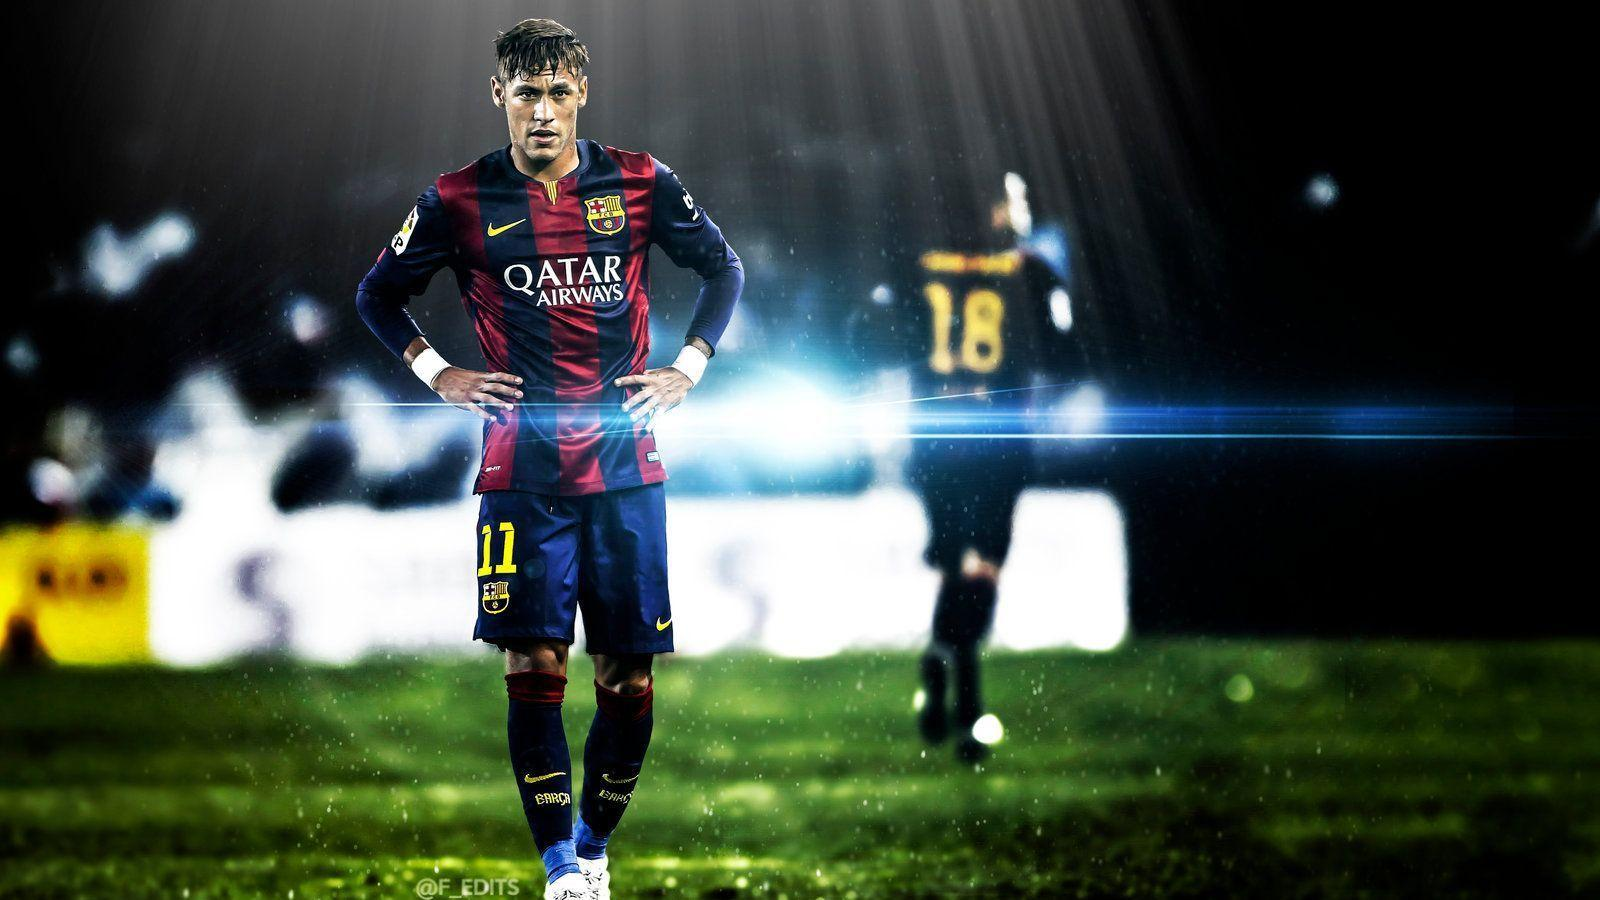 Neymar Jr Wallpapers 2016 Hd Wallpaper Cave